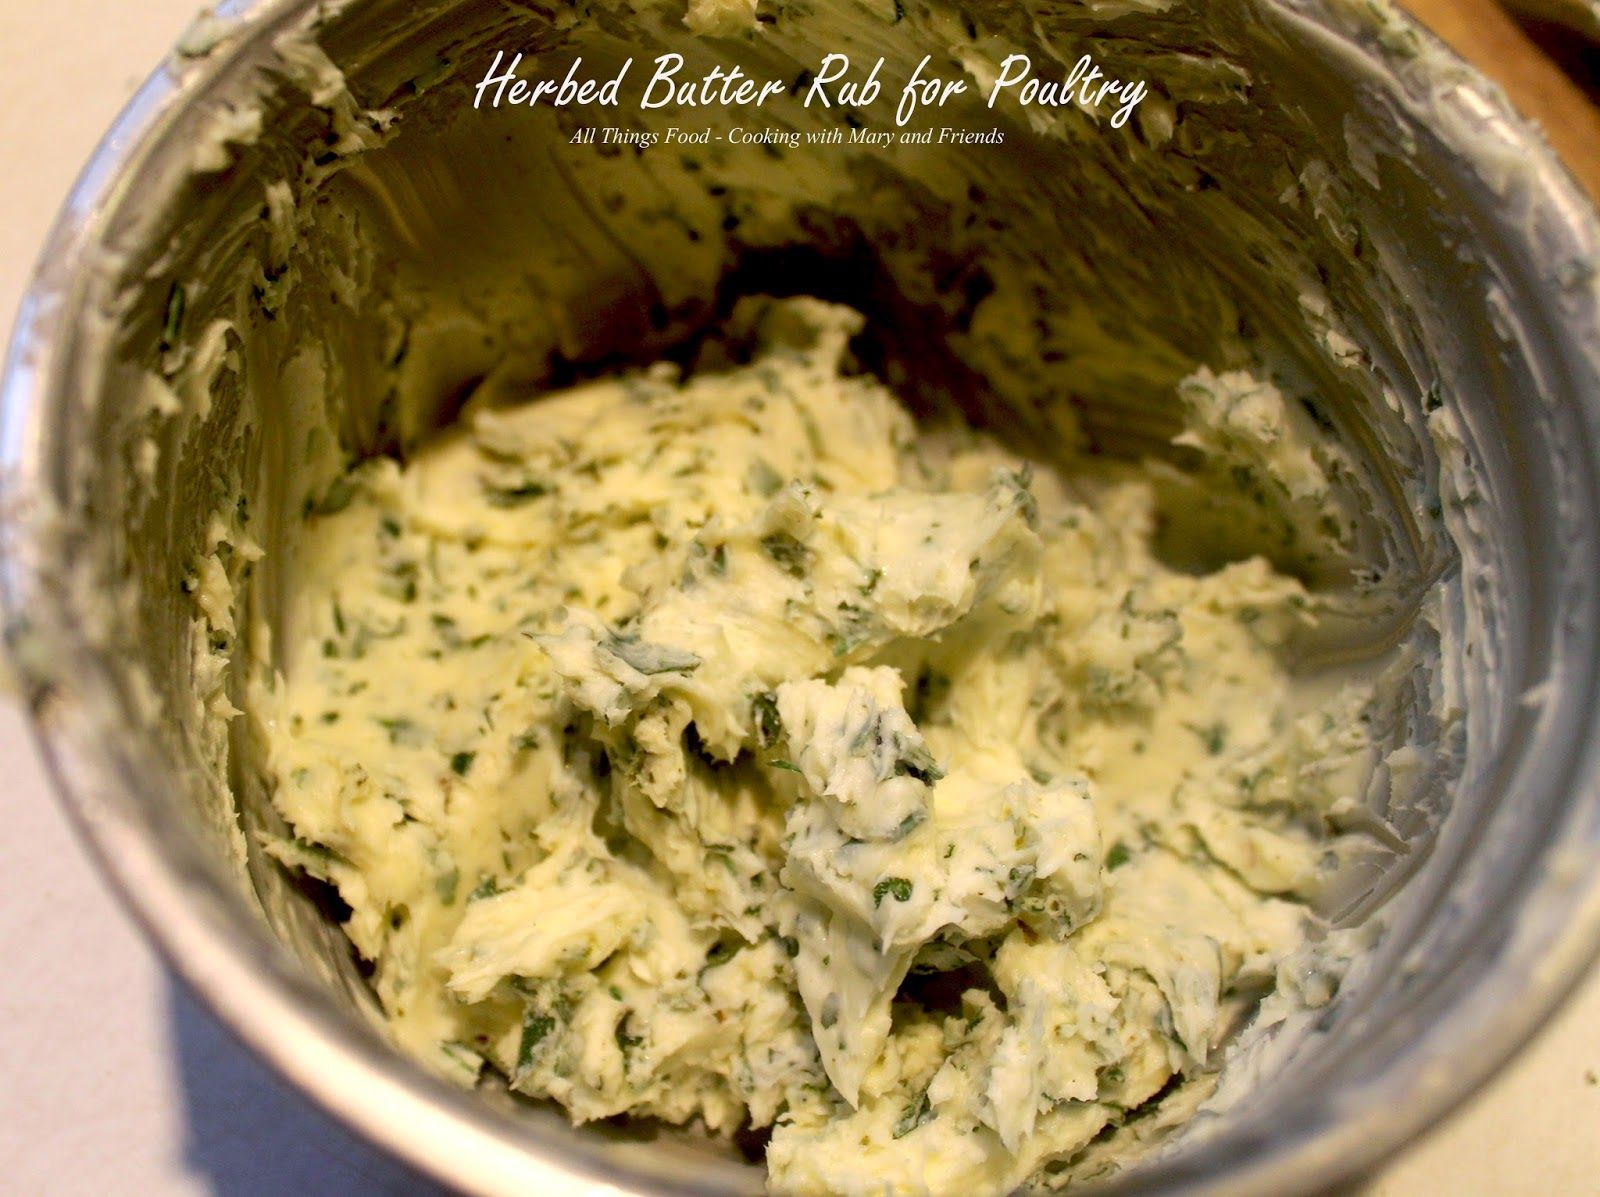 Cooking With Mary And Friends Herbed Butter Rub For Poultry Turkey Rub Recipes Thanksgiving Flavored Butter Recipes Herb Butter Recipe